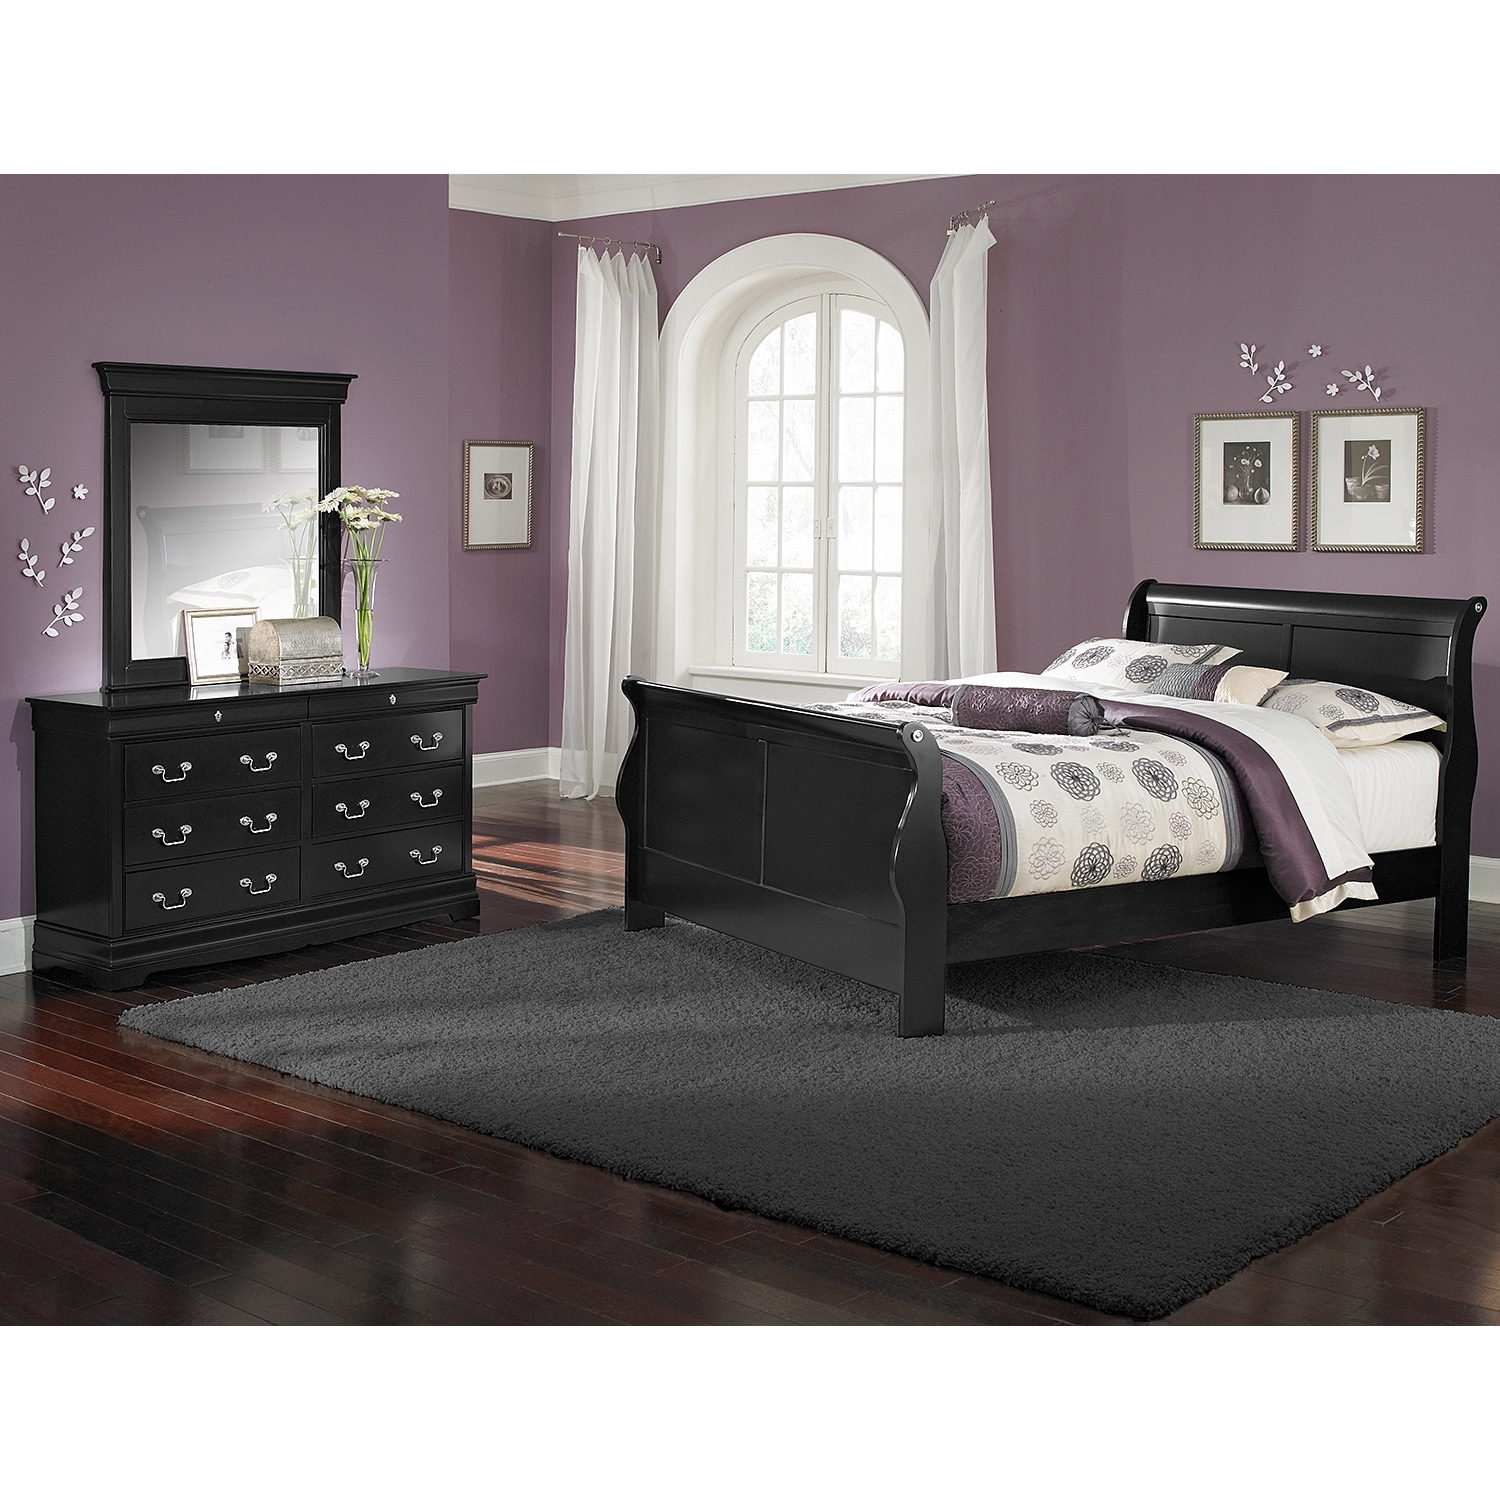 Value city furniture for Furniture bedroom furniture